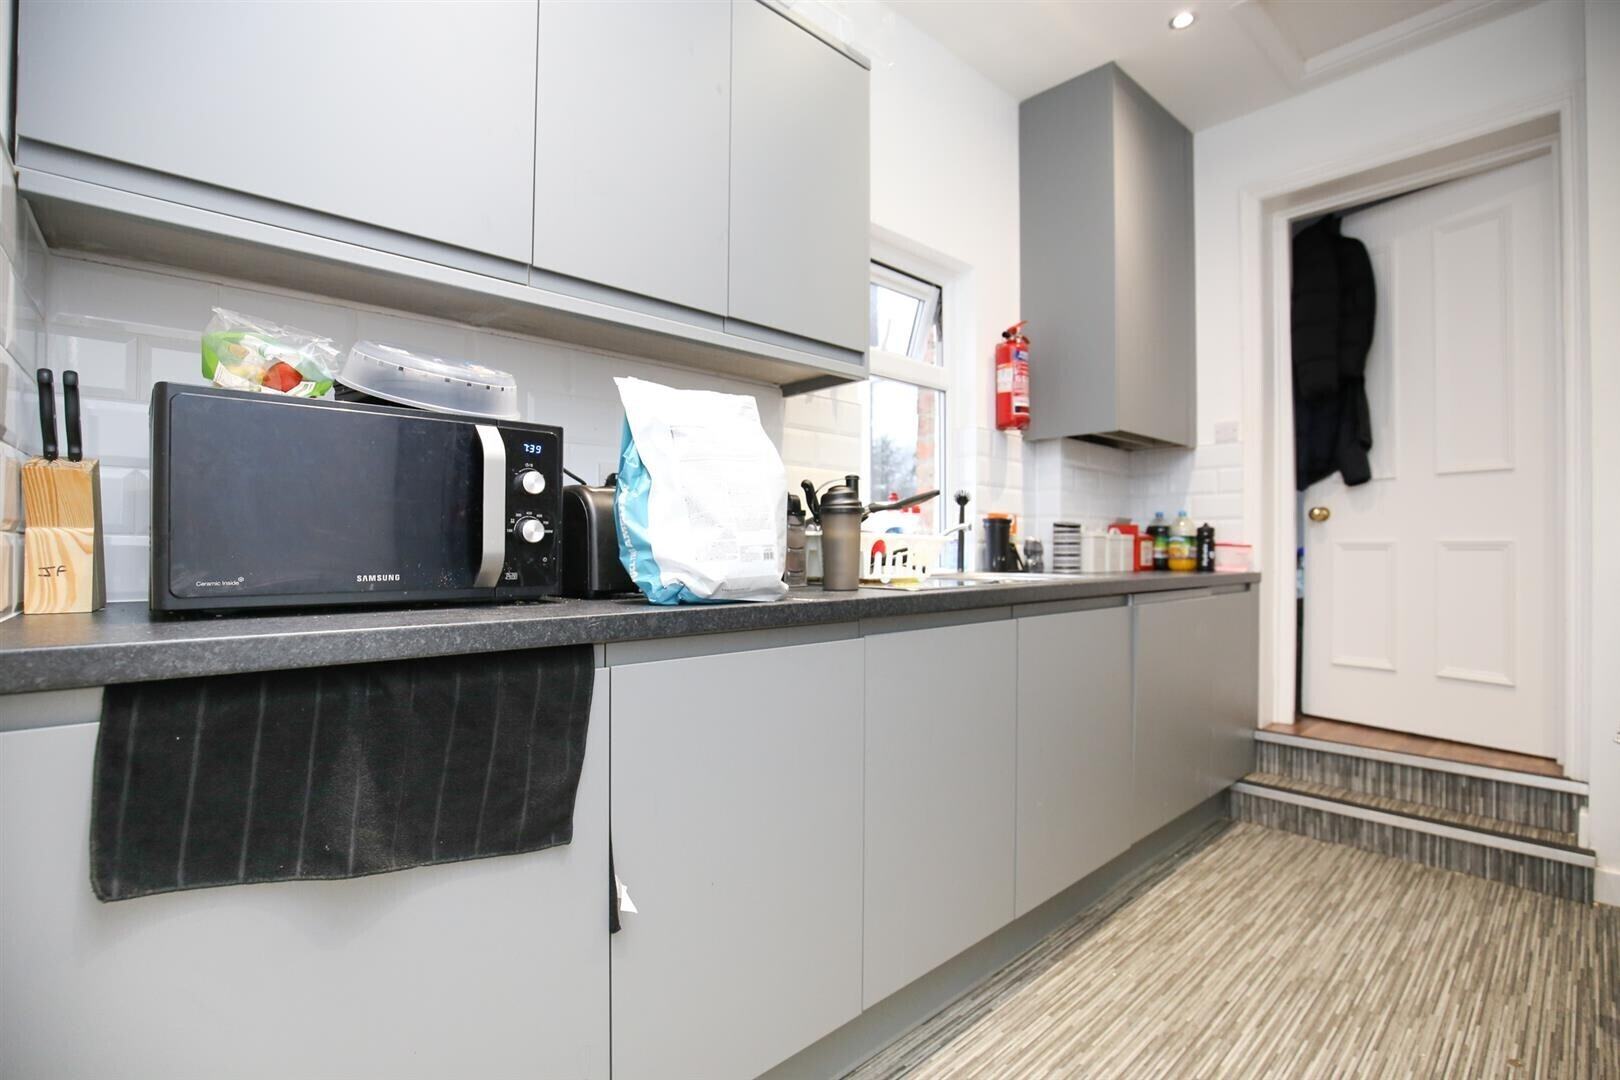 5 bedroom student house in Jesmond, Newcastle